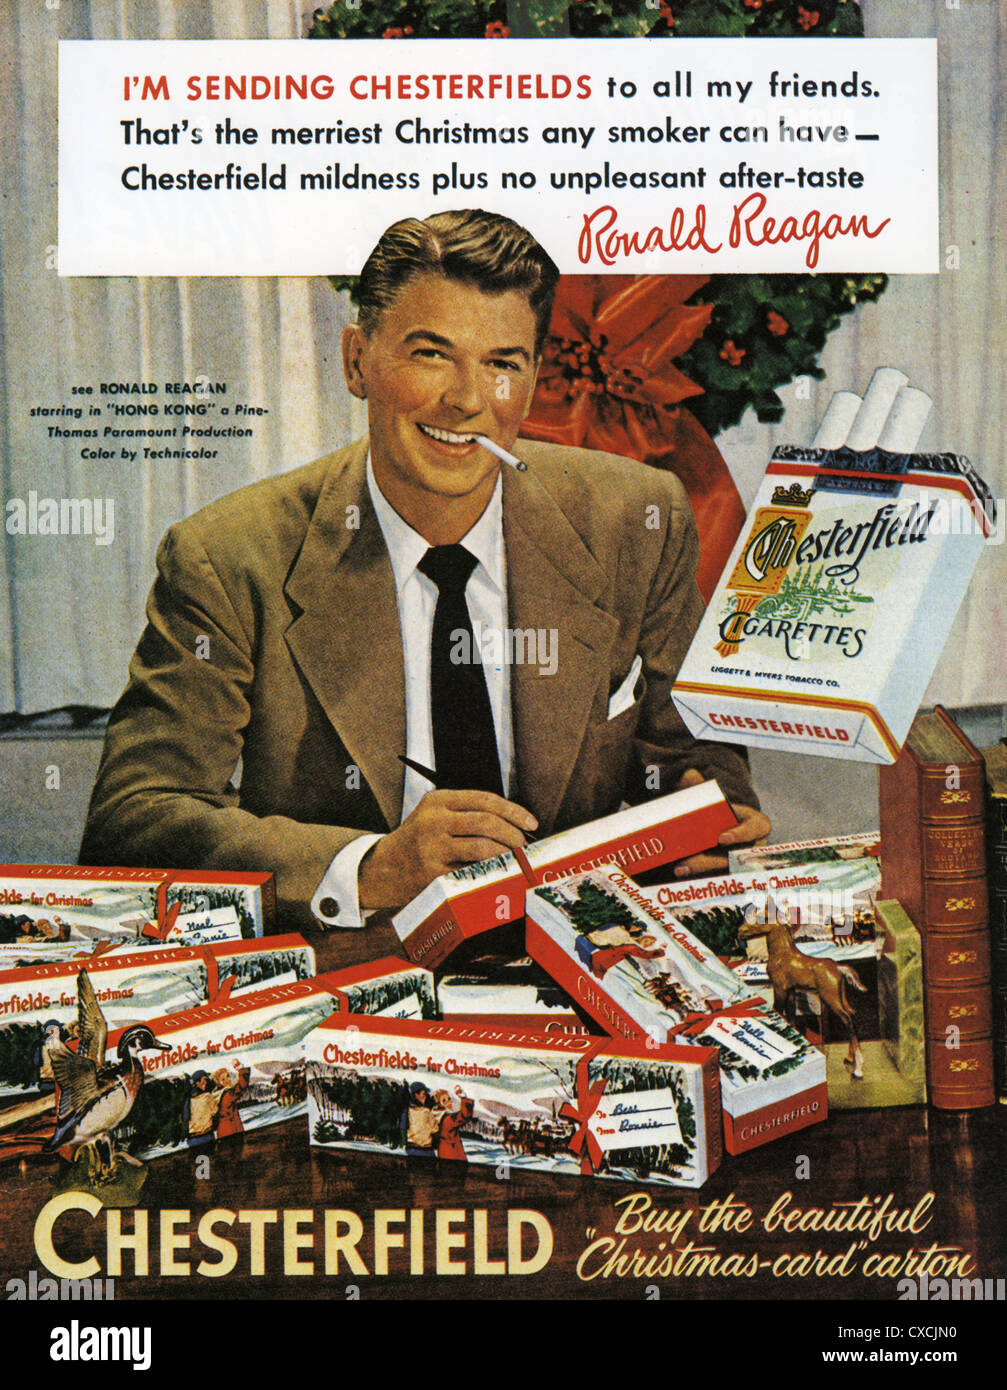 CHESTERFIELD CIGARETTE advert with Ronald Reagan in 1950 - Stock Image